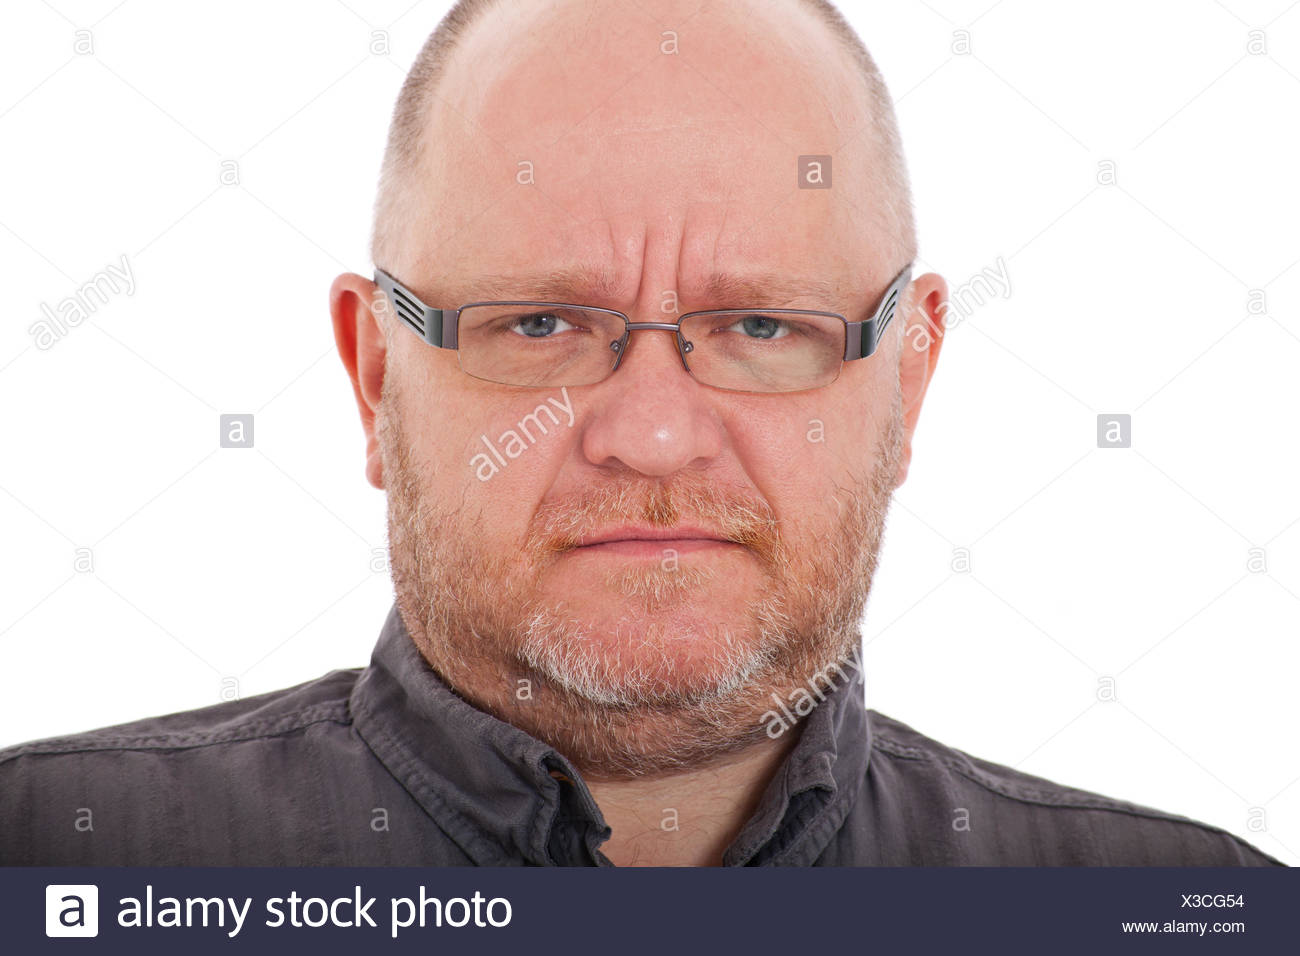 Elderly man in bad mood - Stock Image